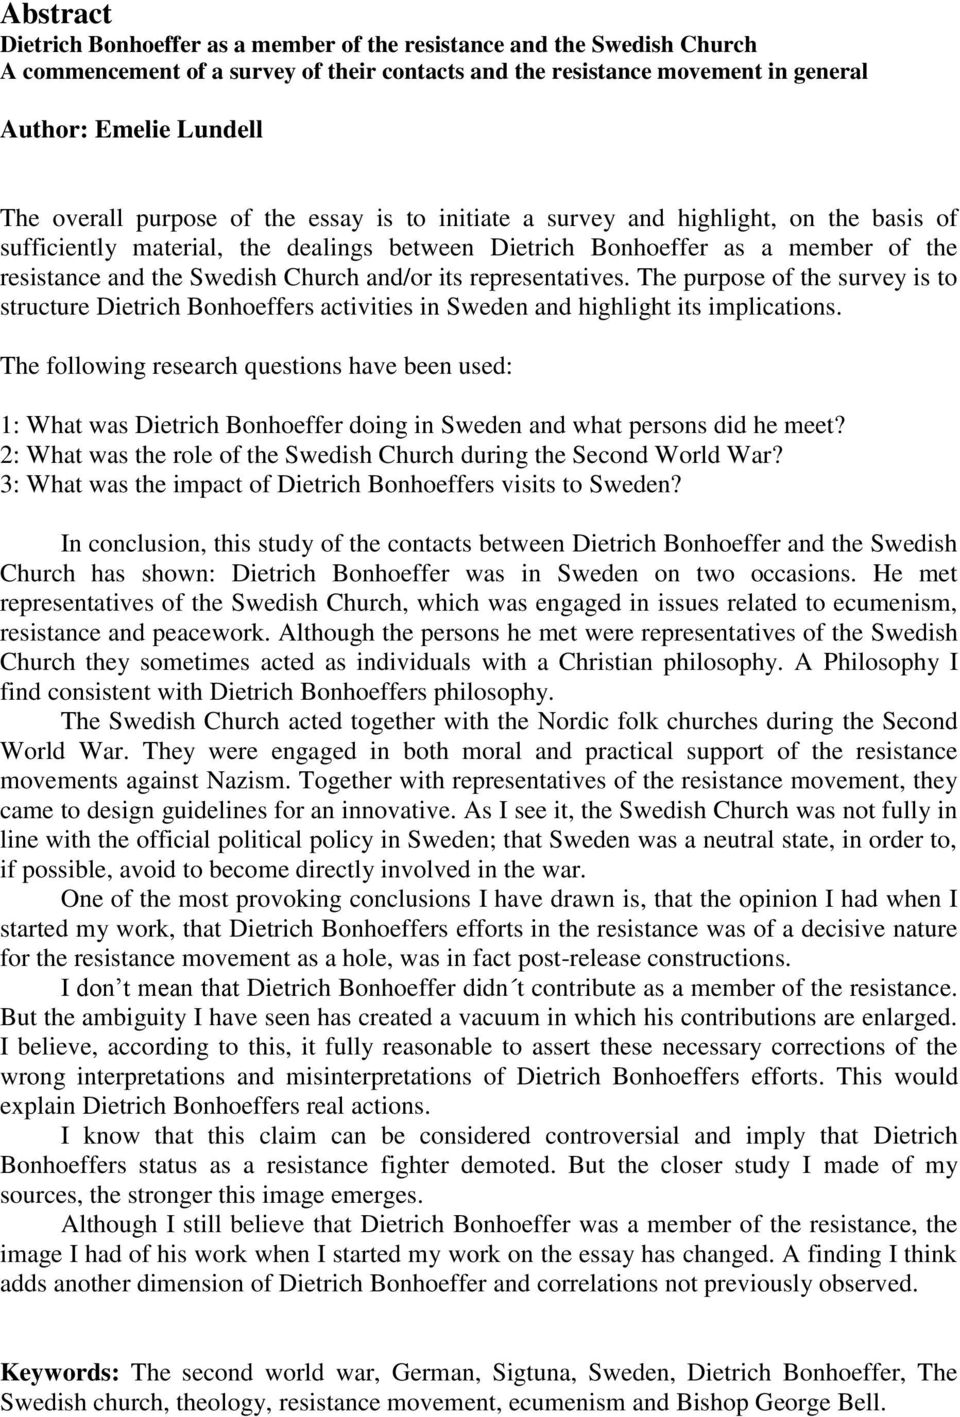 Church and/or its representatives. The purpose of the survey is to structure Dietrich Bonhoeffers activities in Sweden and highlight its implications.